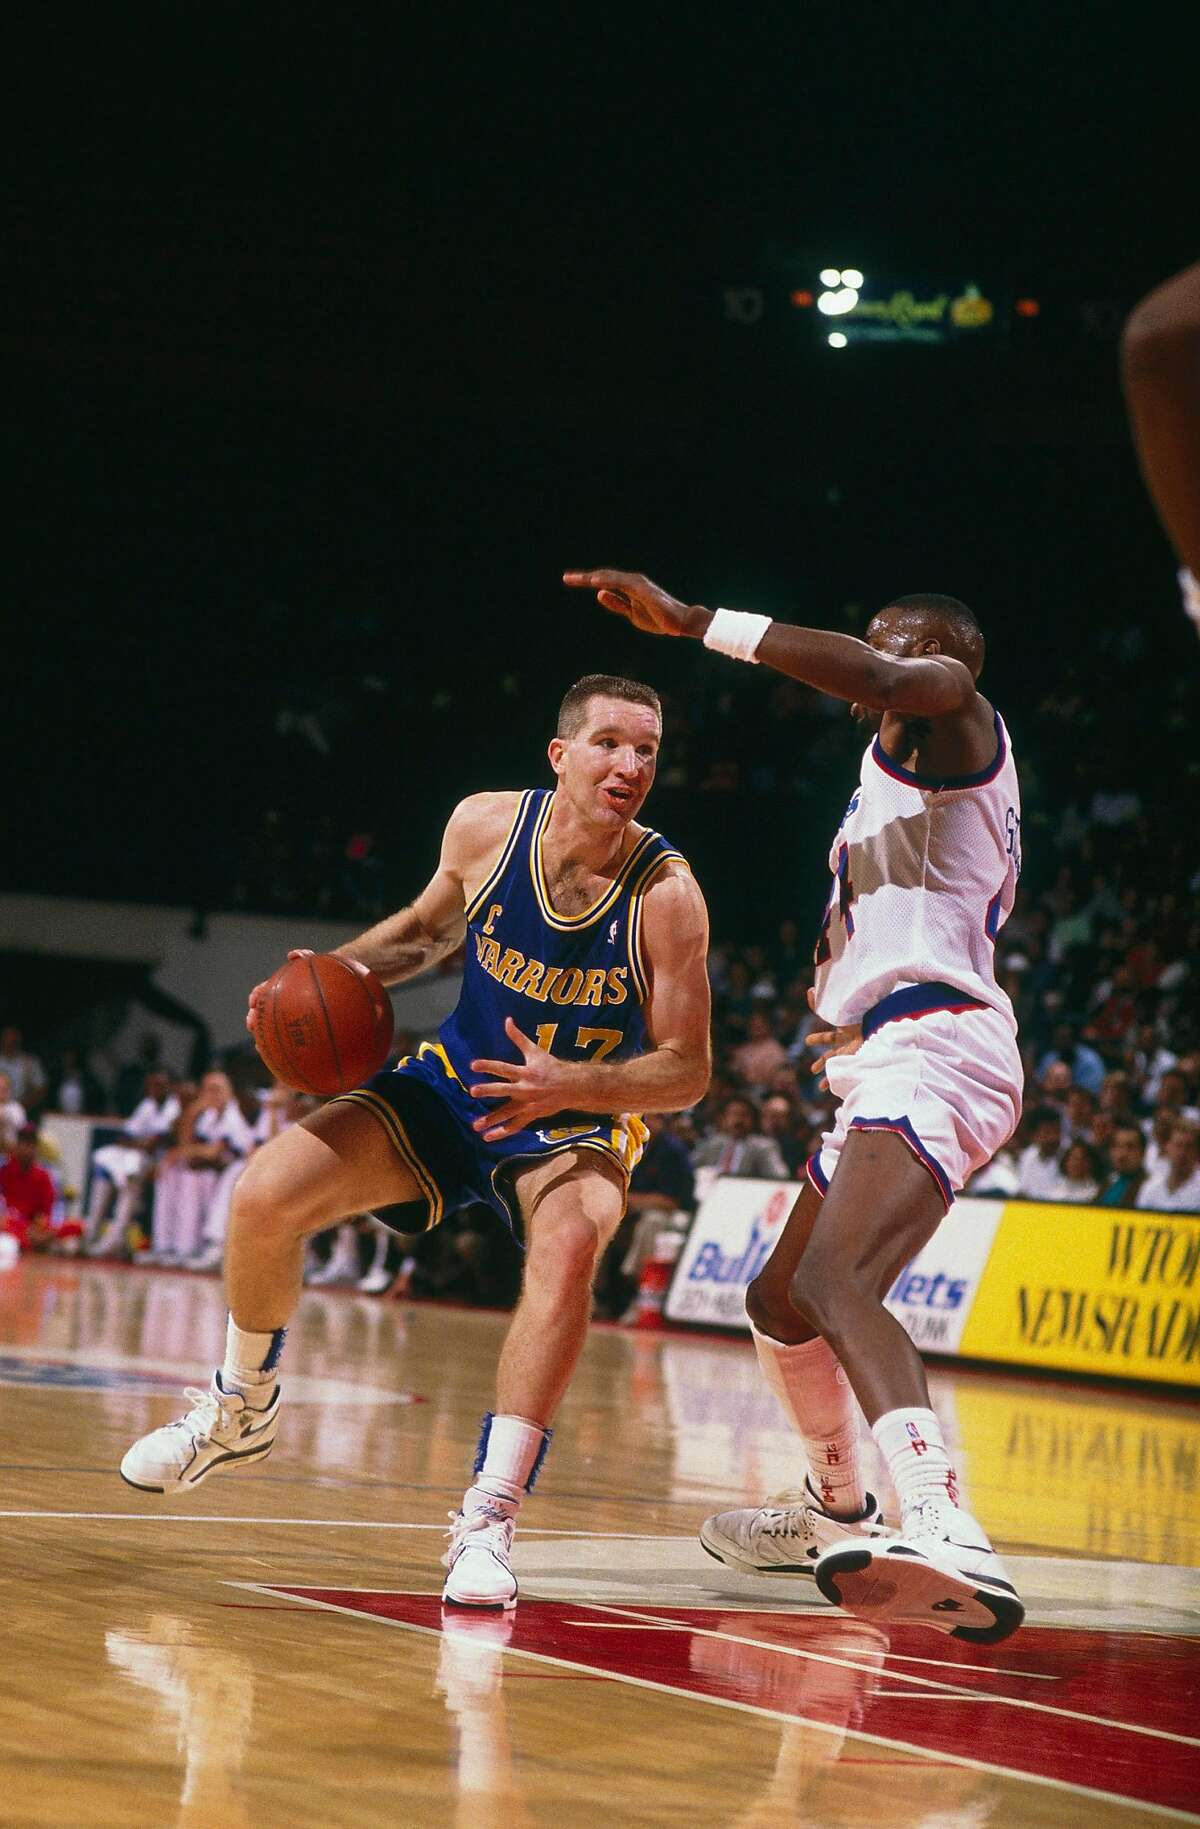 WASHINGTON - UNDATED: Golden State Warriors' forward Chris Mullin #17 dribbles downcourt against the Washington Bullets at Capital Center circa the 1990's in Washington, D.C.. NOTE TO USER: User expressly acknowledges and agrees that, by downloading and/or using this Photograph, user is consenting to the terms and conditions of the Getty Images License Agreement. (Photo by Focus on Sport/Getty Images)